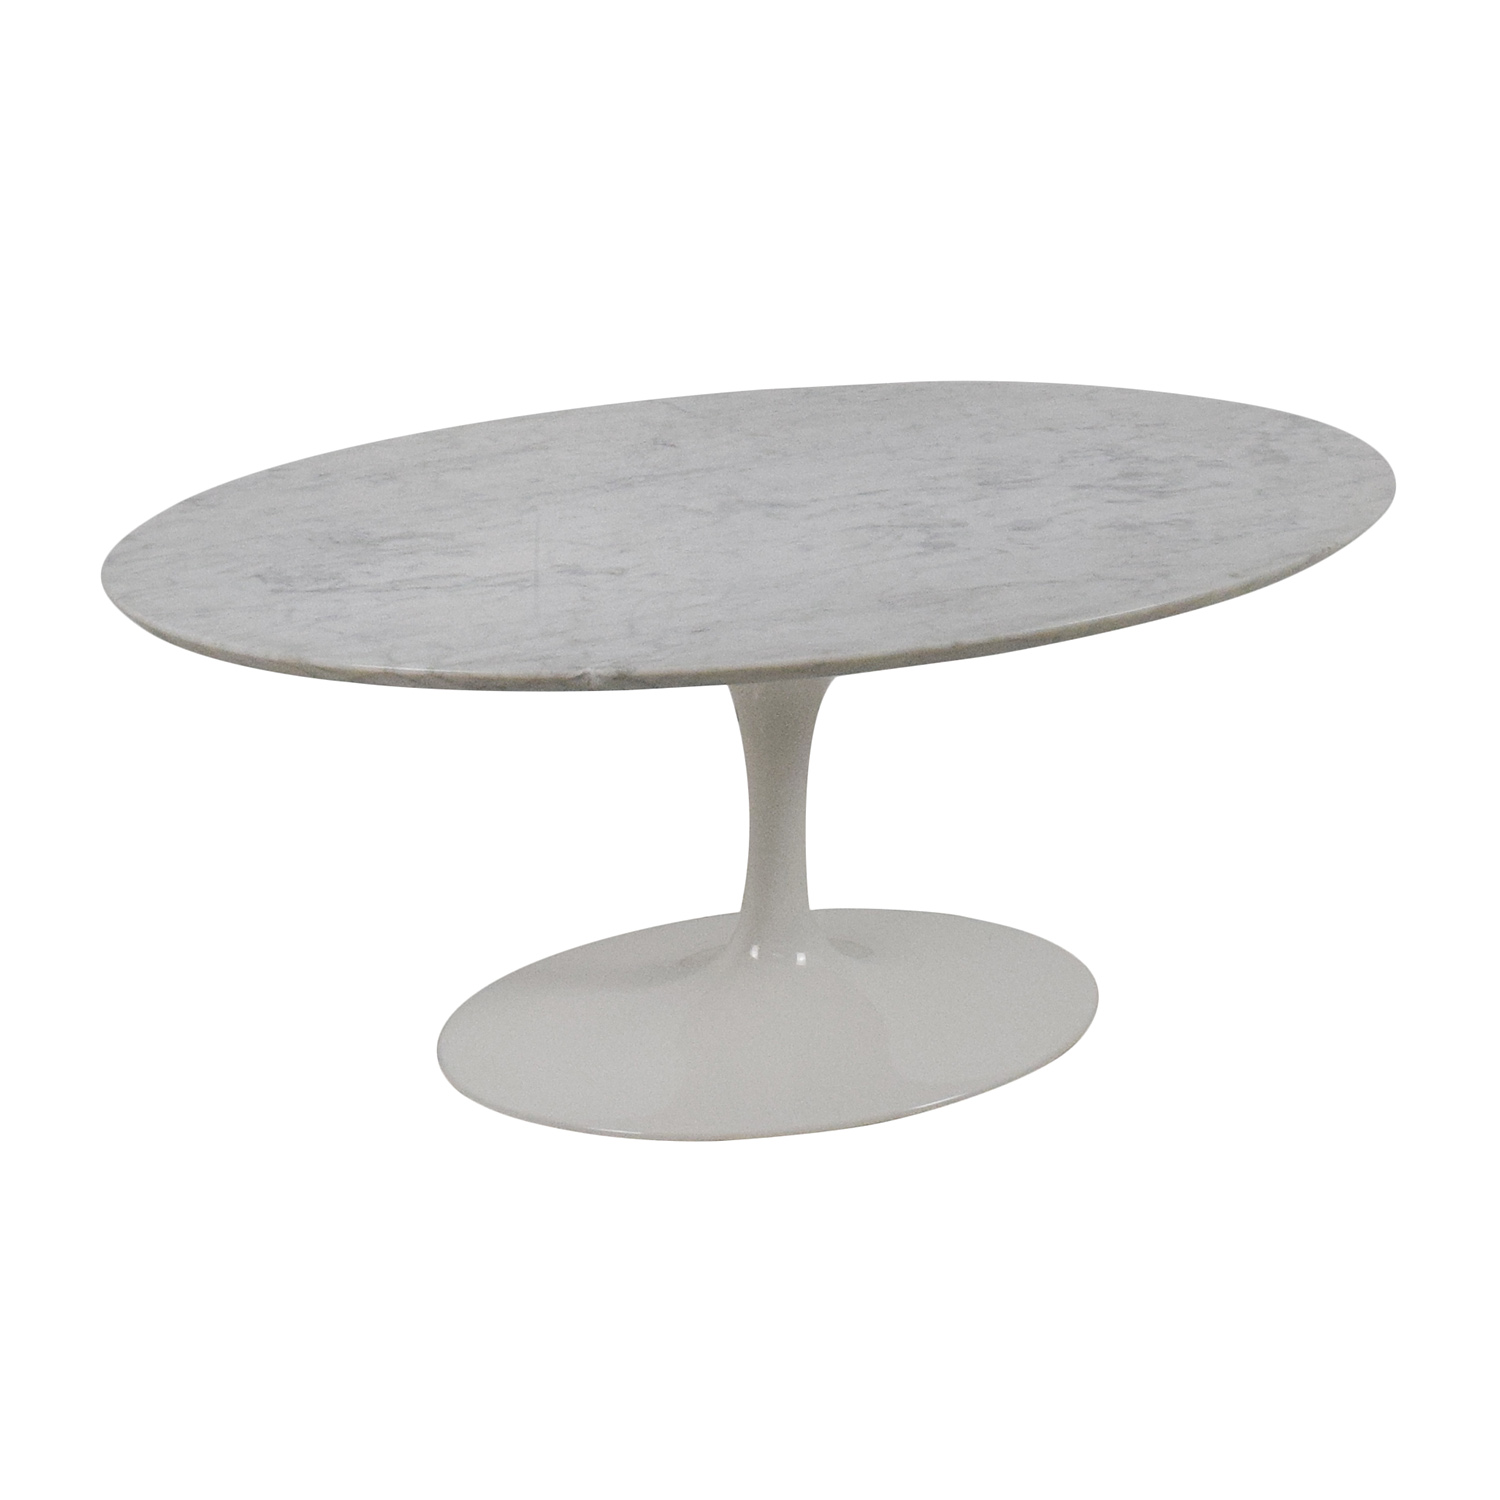 Saarinen oval table price saarinen tulip oval table for Room and board saarinen table